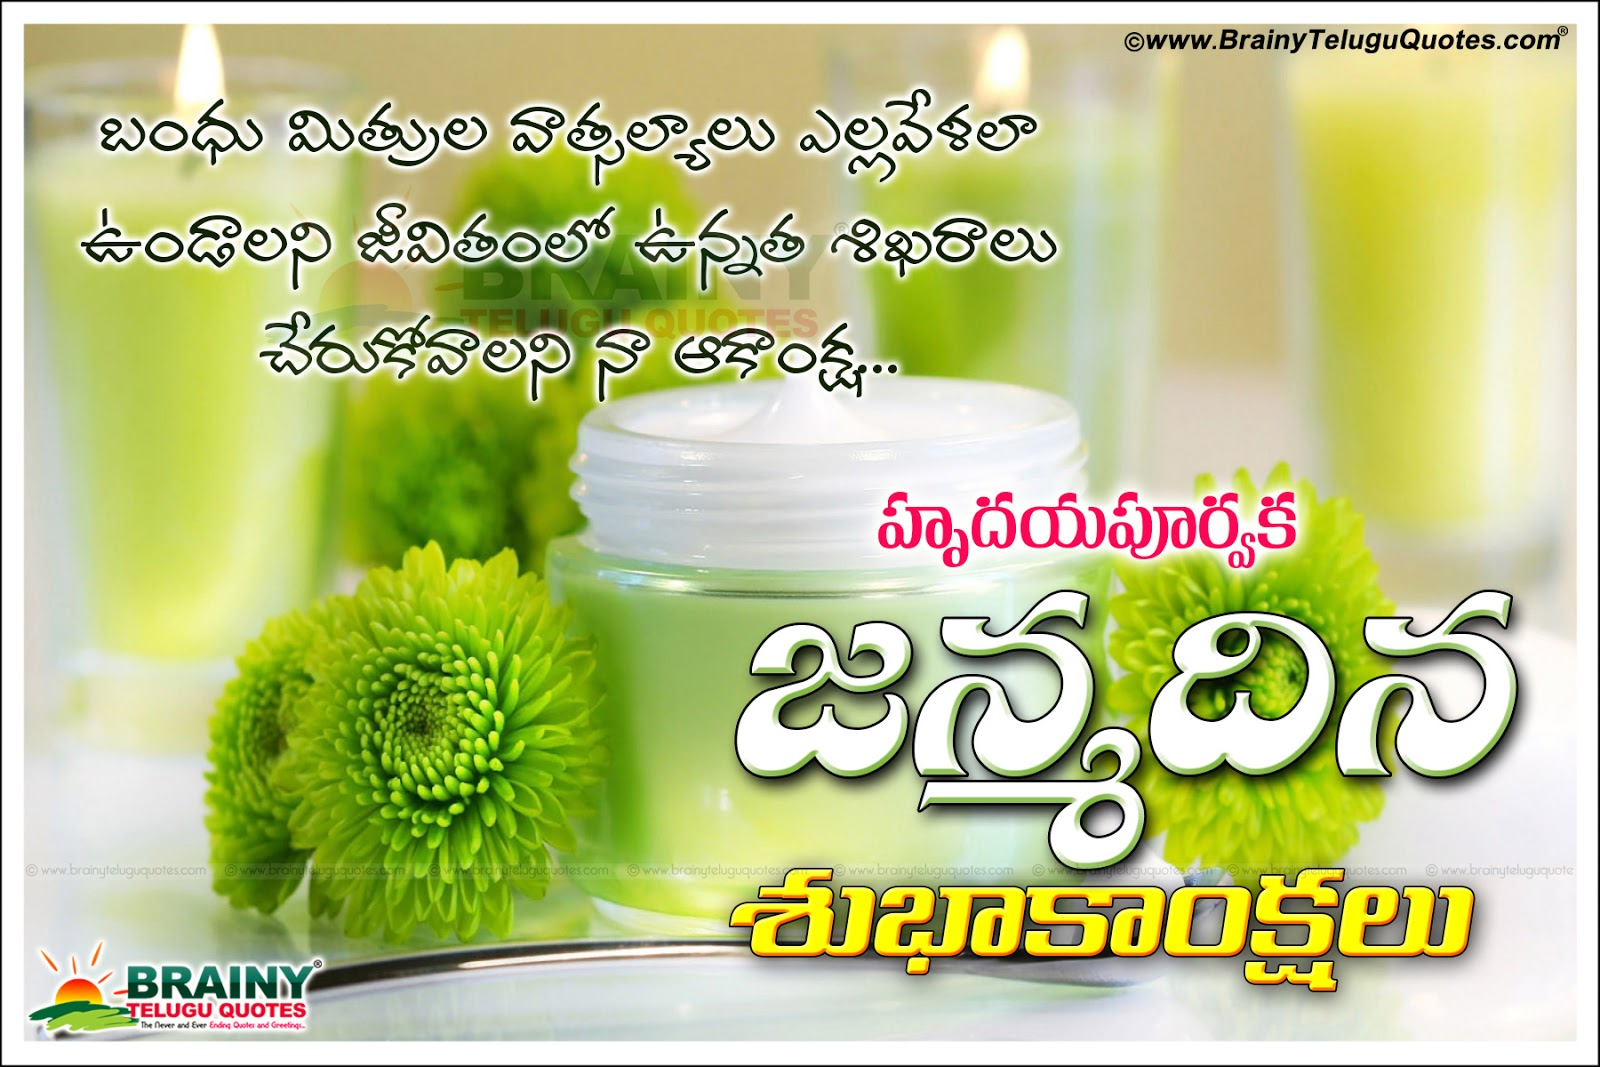 happy birthday new telugu greetings cards wishes quotes